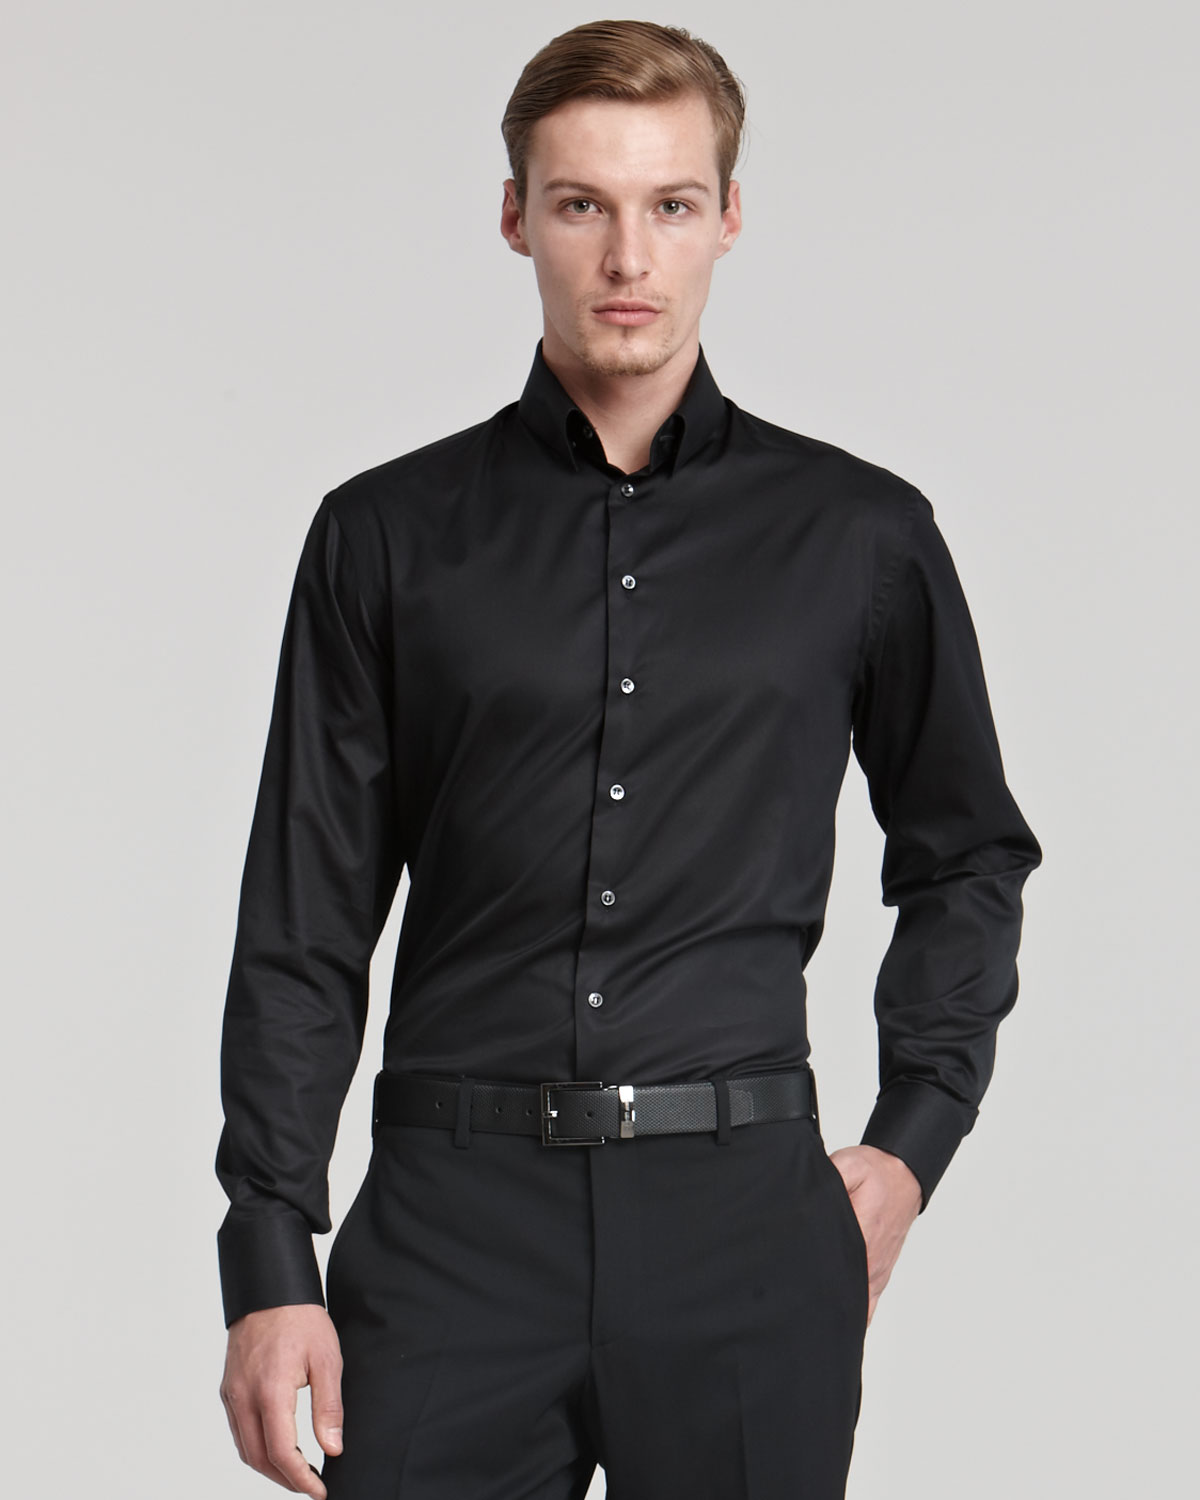 giorgio armani woven dress shirt in black for men lyst